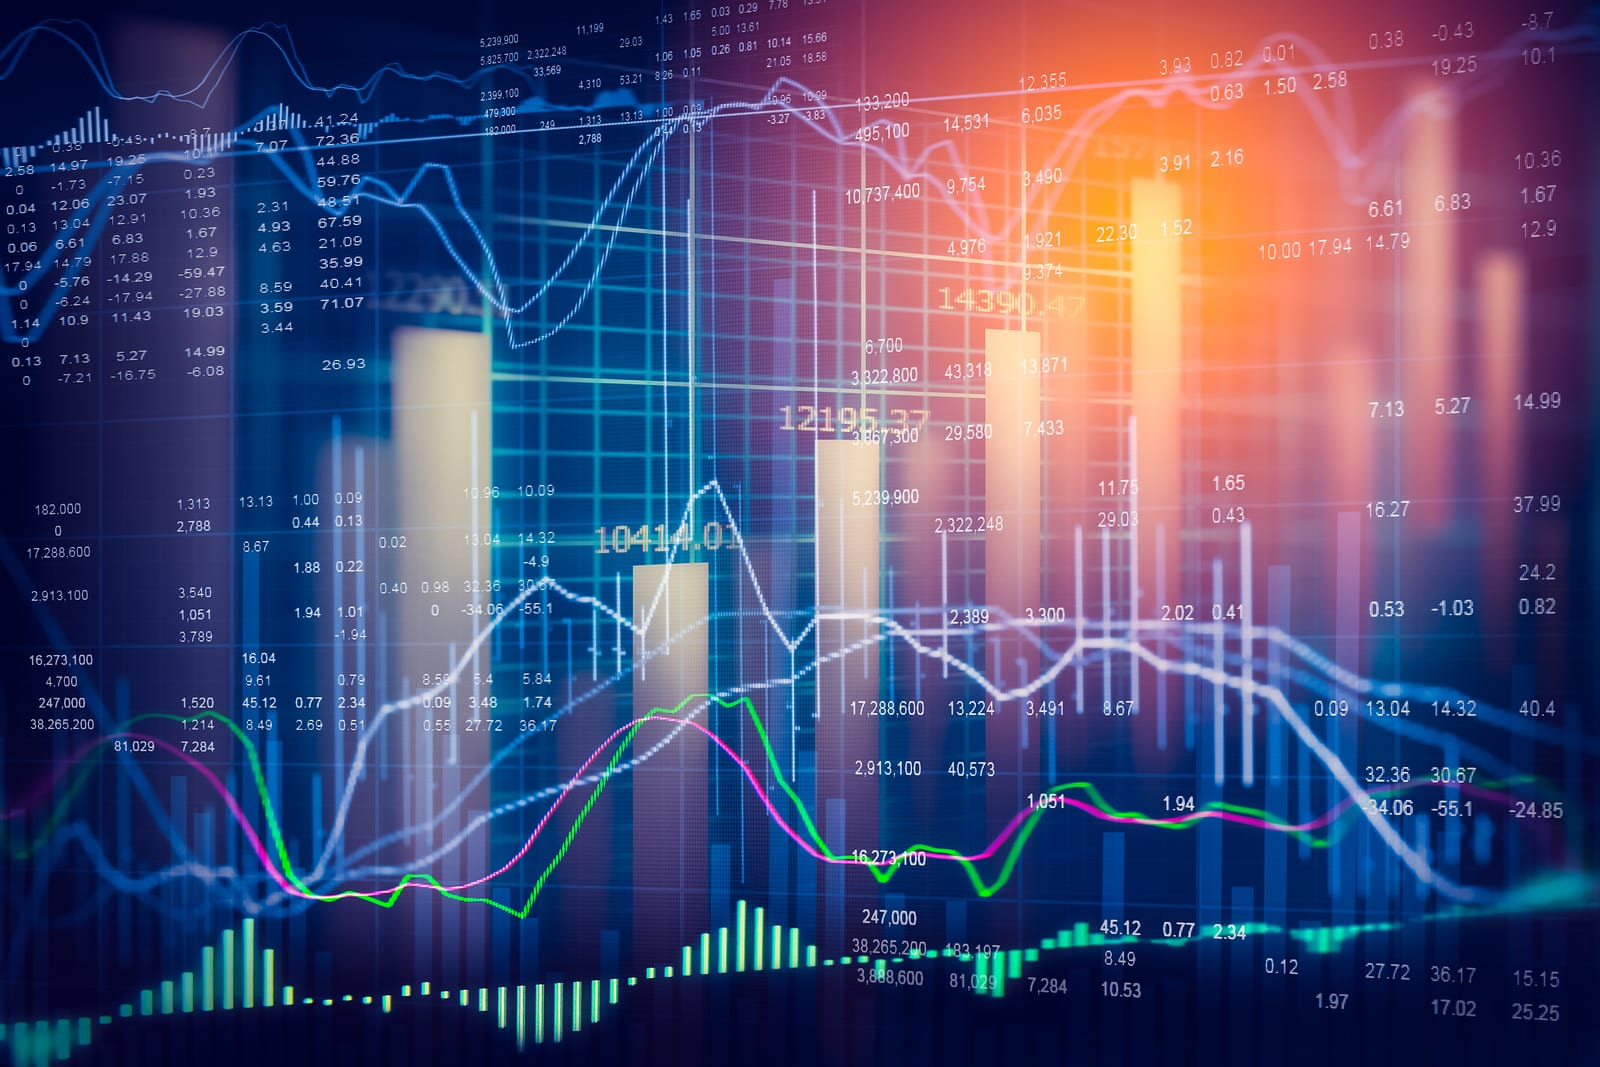 S&P Dow Jones Indices News: Paycom Software Set to Join S&P 500